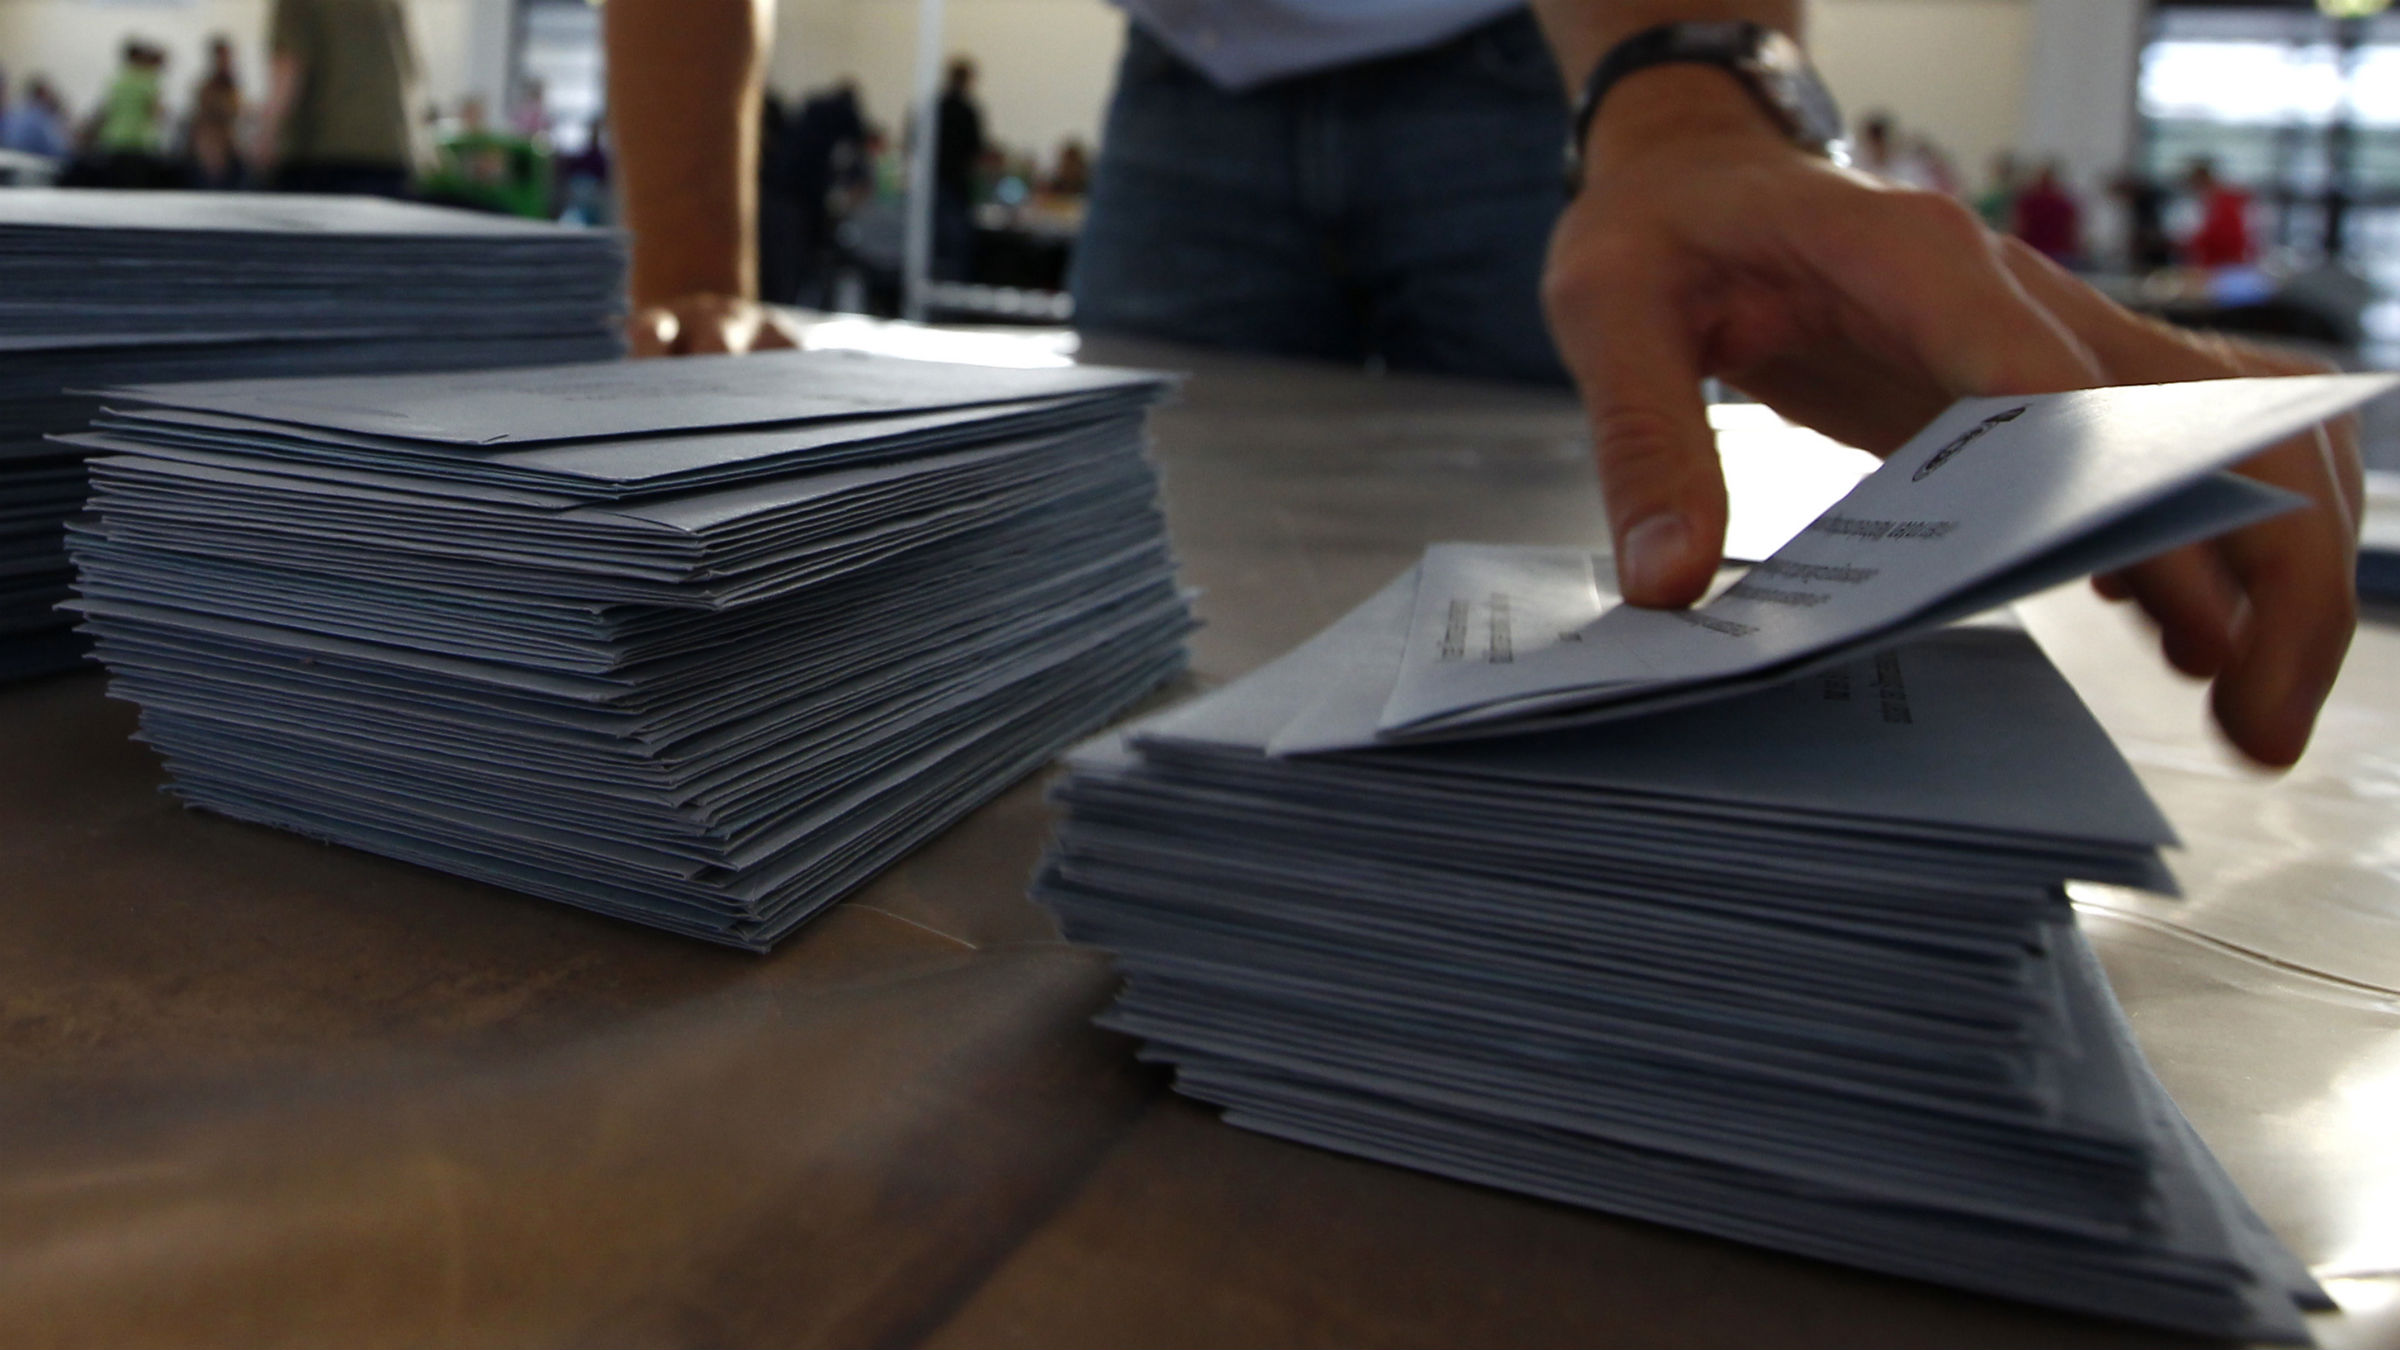 Electoral officials sort ballot papers after the conclusion of voting in the German general election (Bundestagswahl) at the Messe in Munich September 22, 2013.